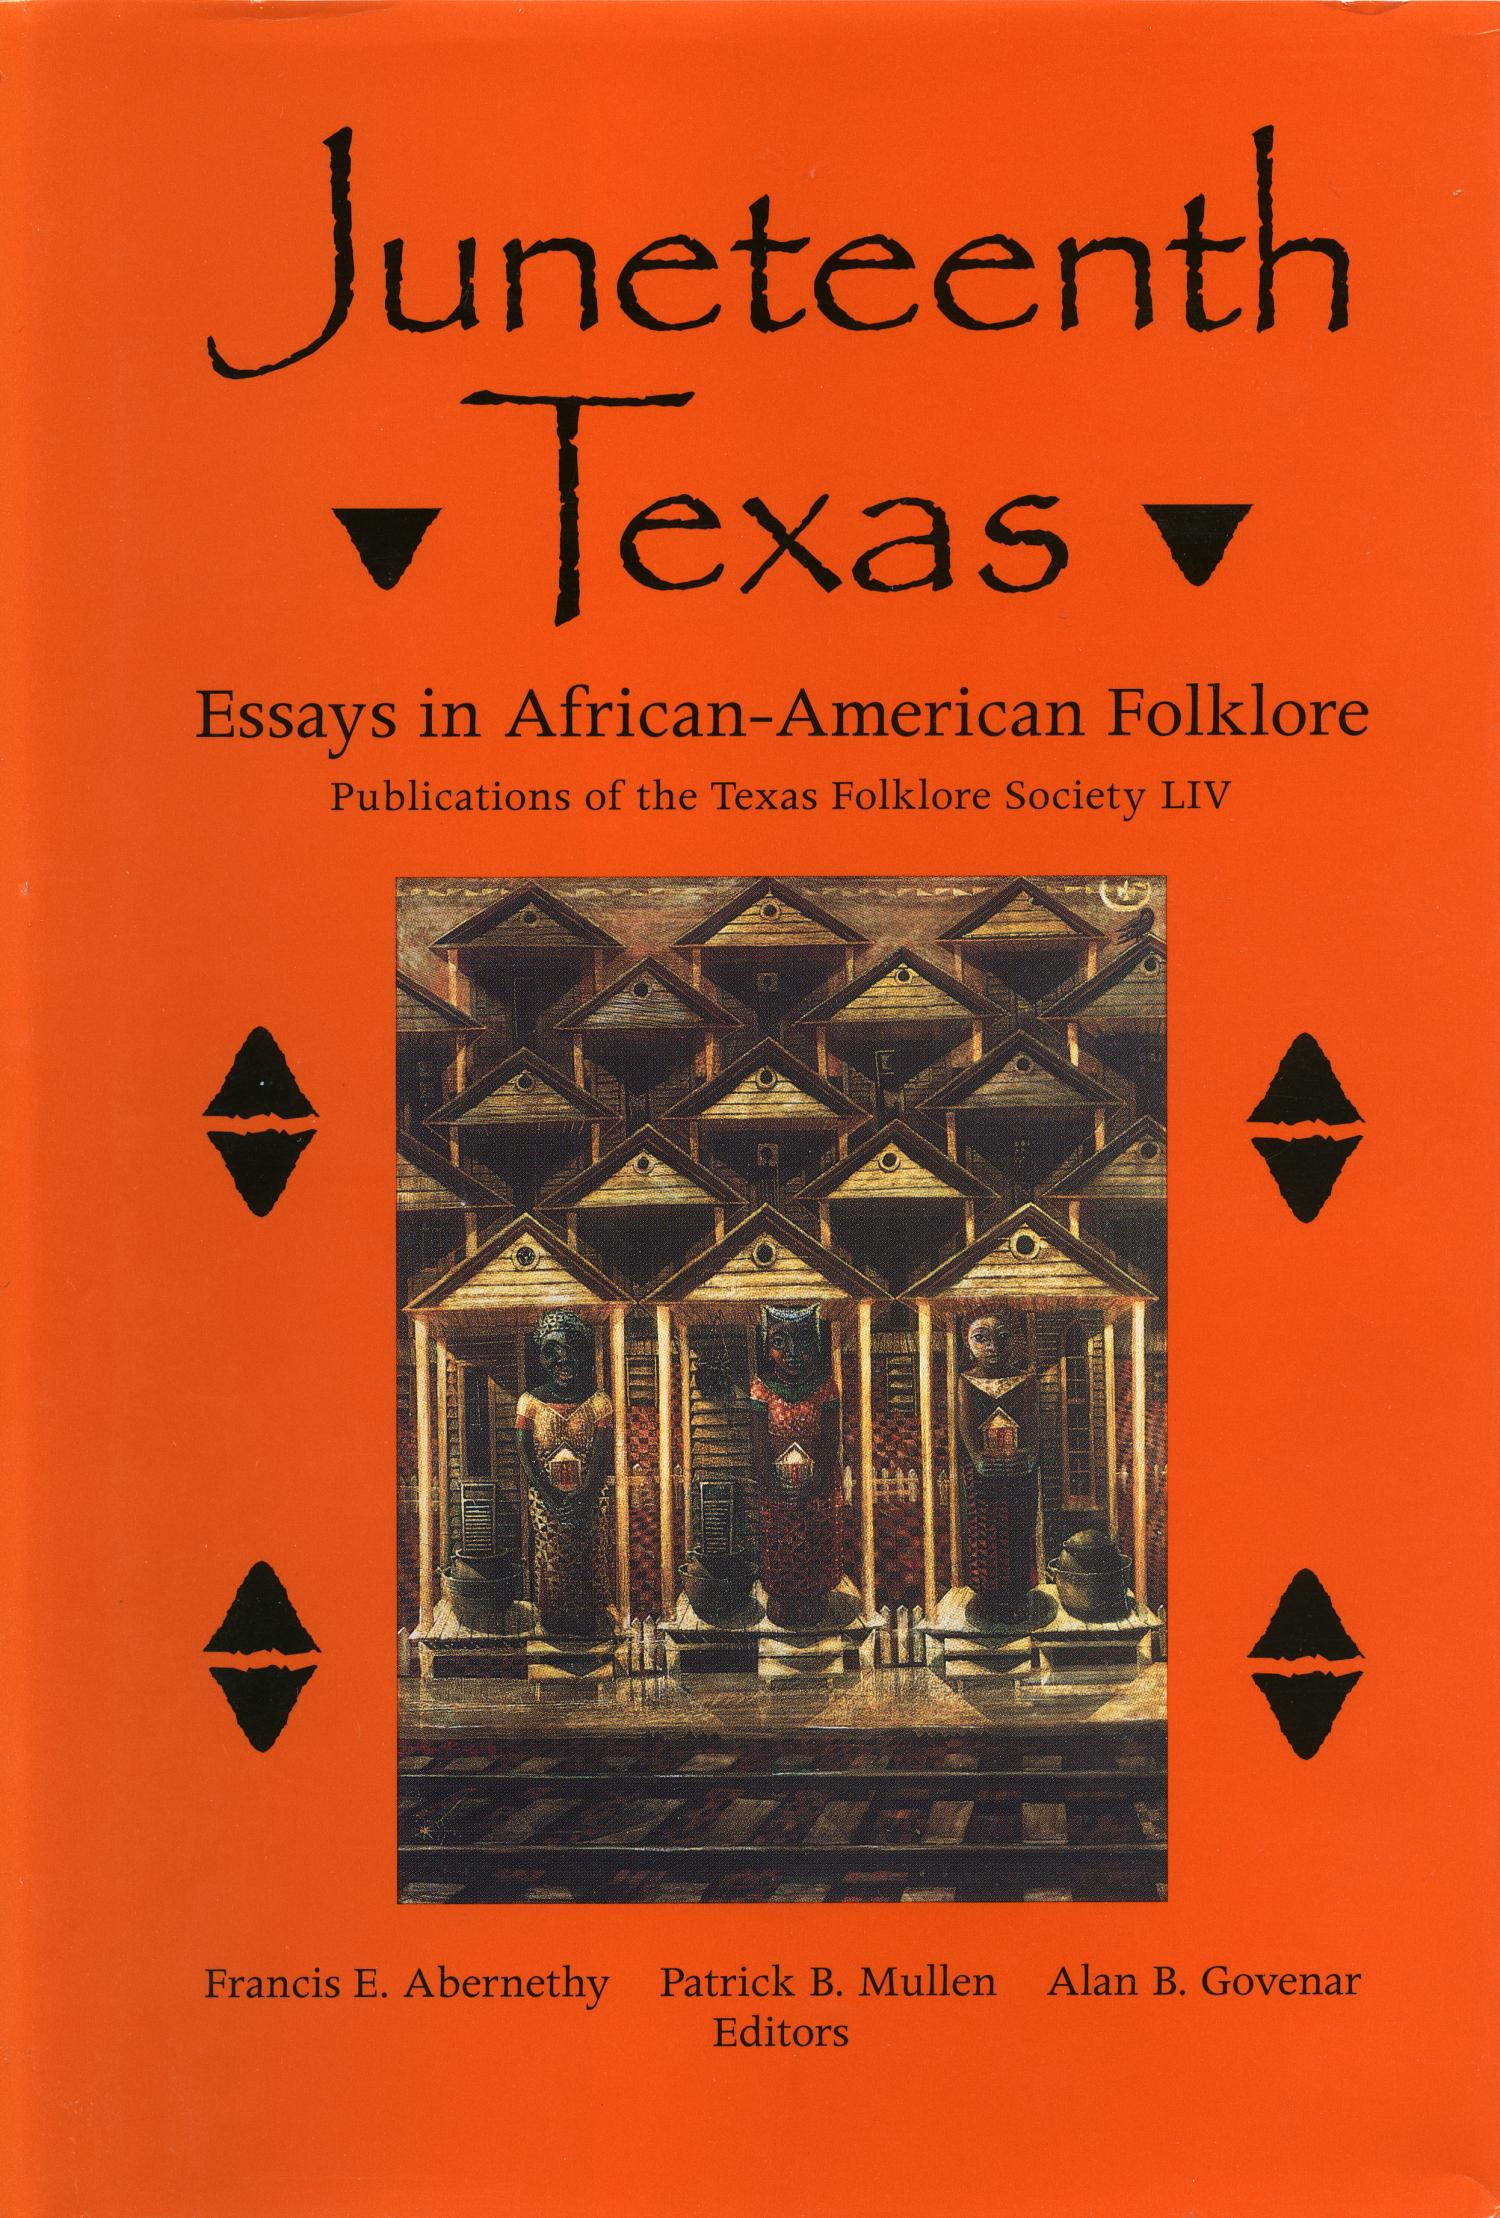 collected cultural essay folklore folklore in literature new perspective theory It focuses on the non-material aspects of traditional culture, especially oral literature  from new perspectives southern folklore journals cultural.